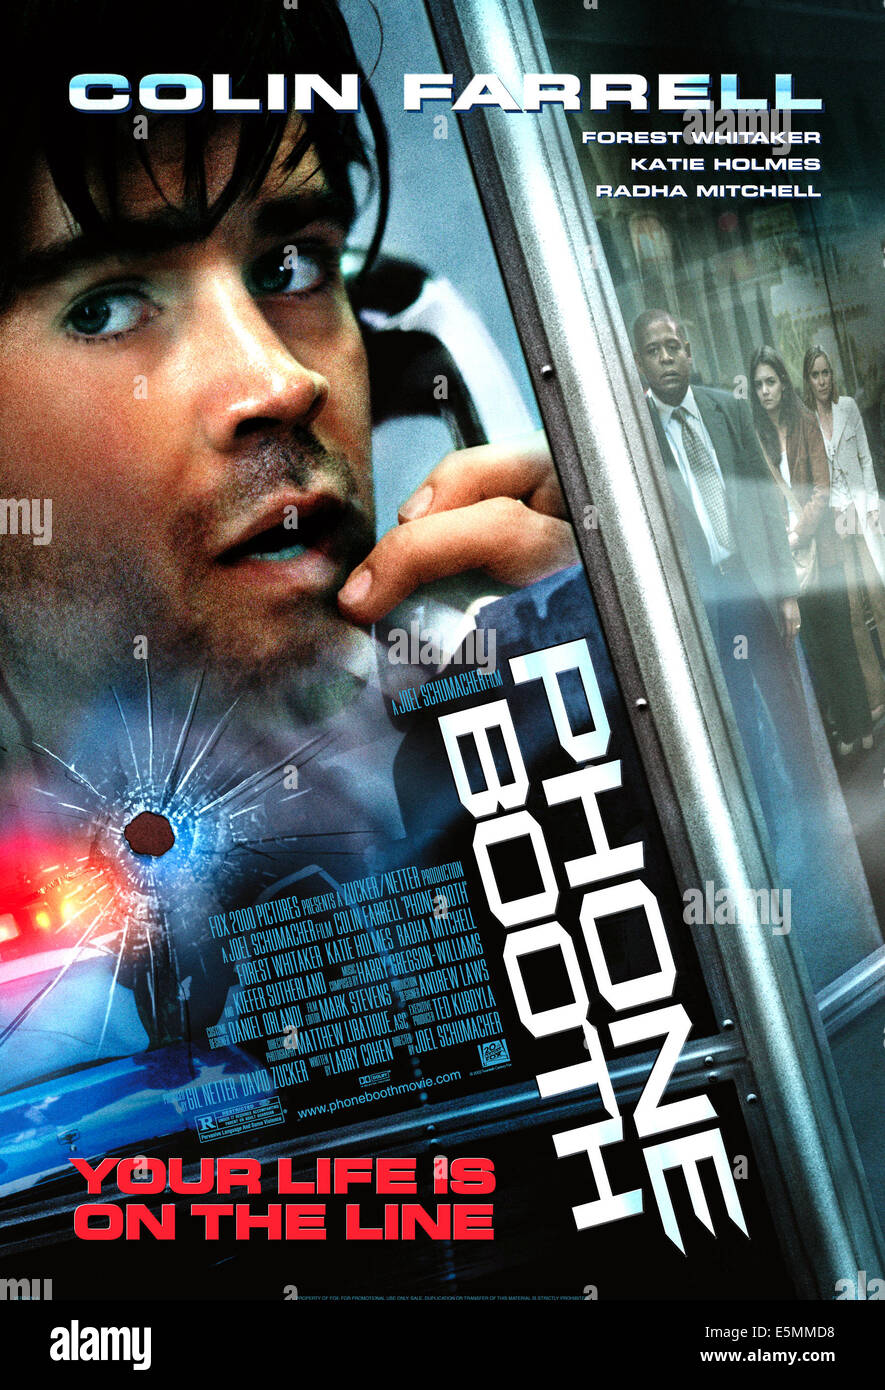 PHONE BOOTH, Colin Farrell, 2003, TM & Copyright (c) 20th Century Fox Film Corp. All rights reserved. - Stock Image